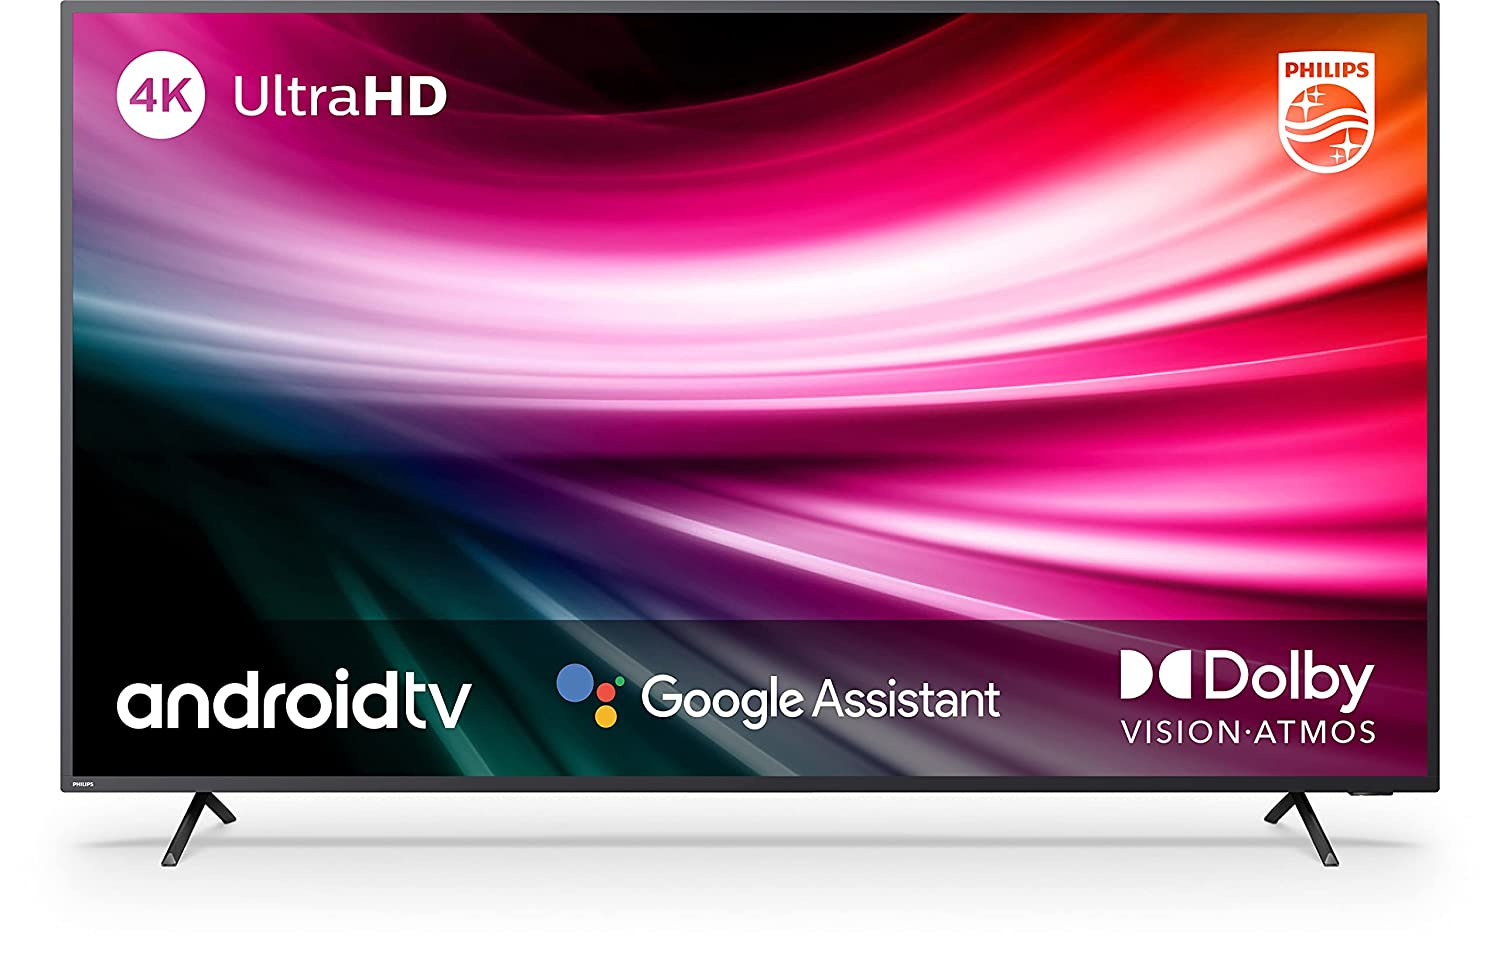 Philips 50 inches 4K UHD LED Android TV (50PUT8215/94)